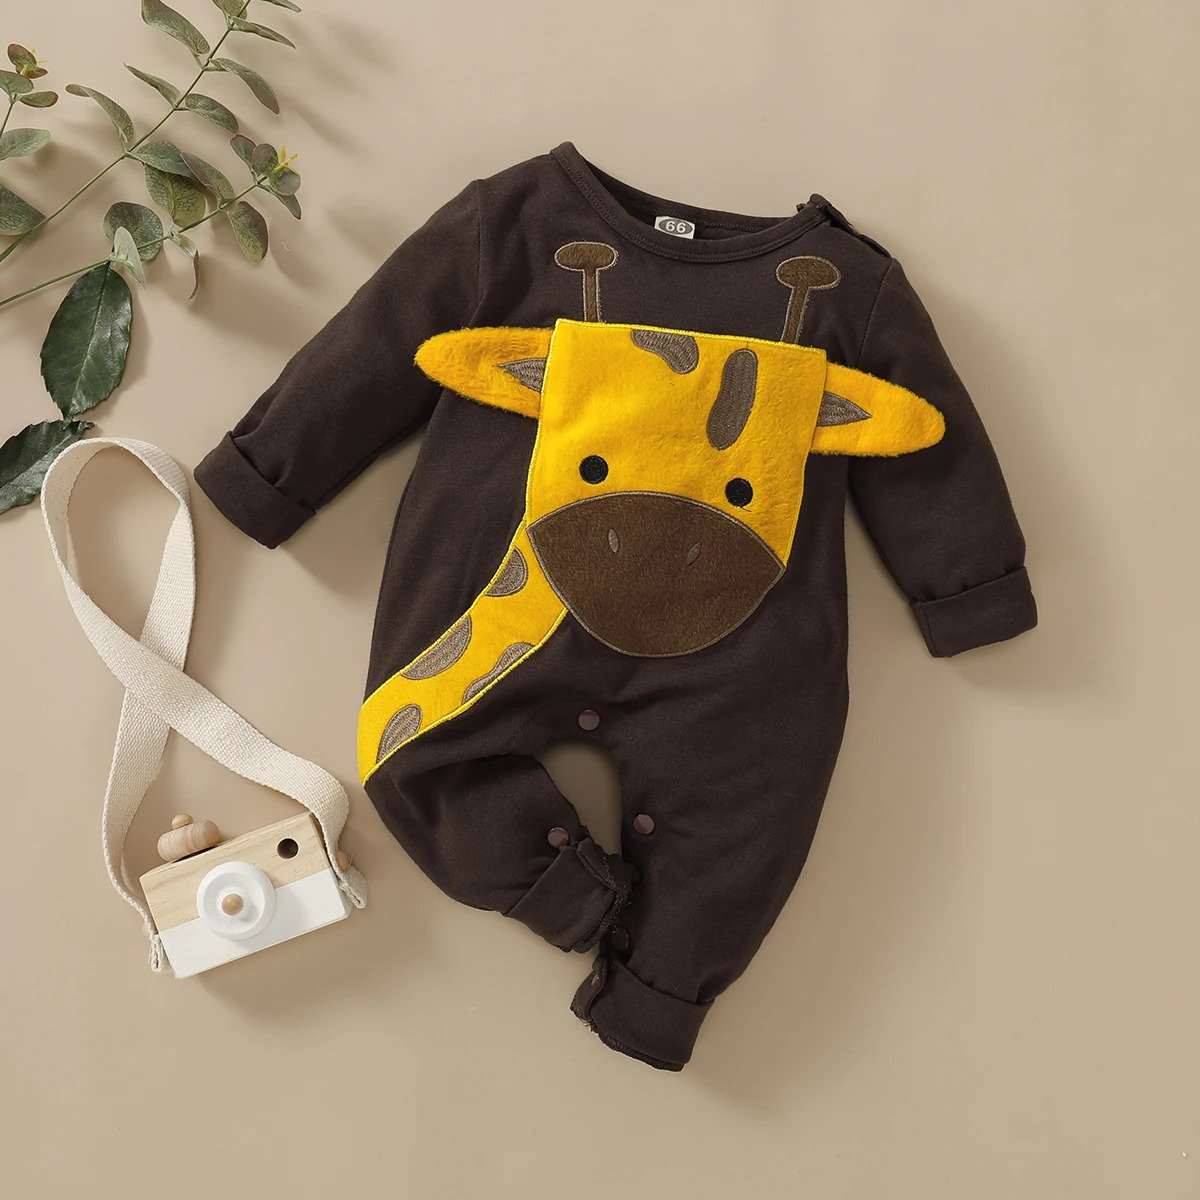 FPPING Shriner Boys Girls Baby Long Sleeve Bodysuits Cool Baby Jumpsuit